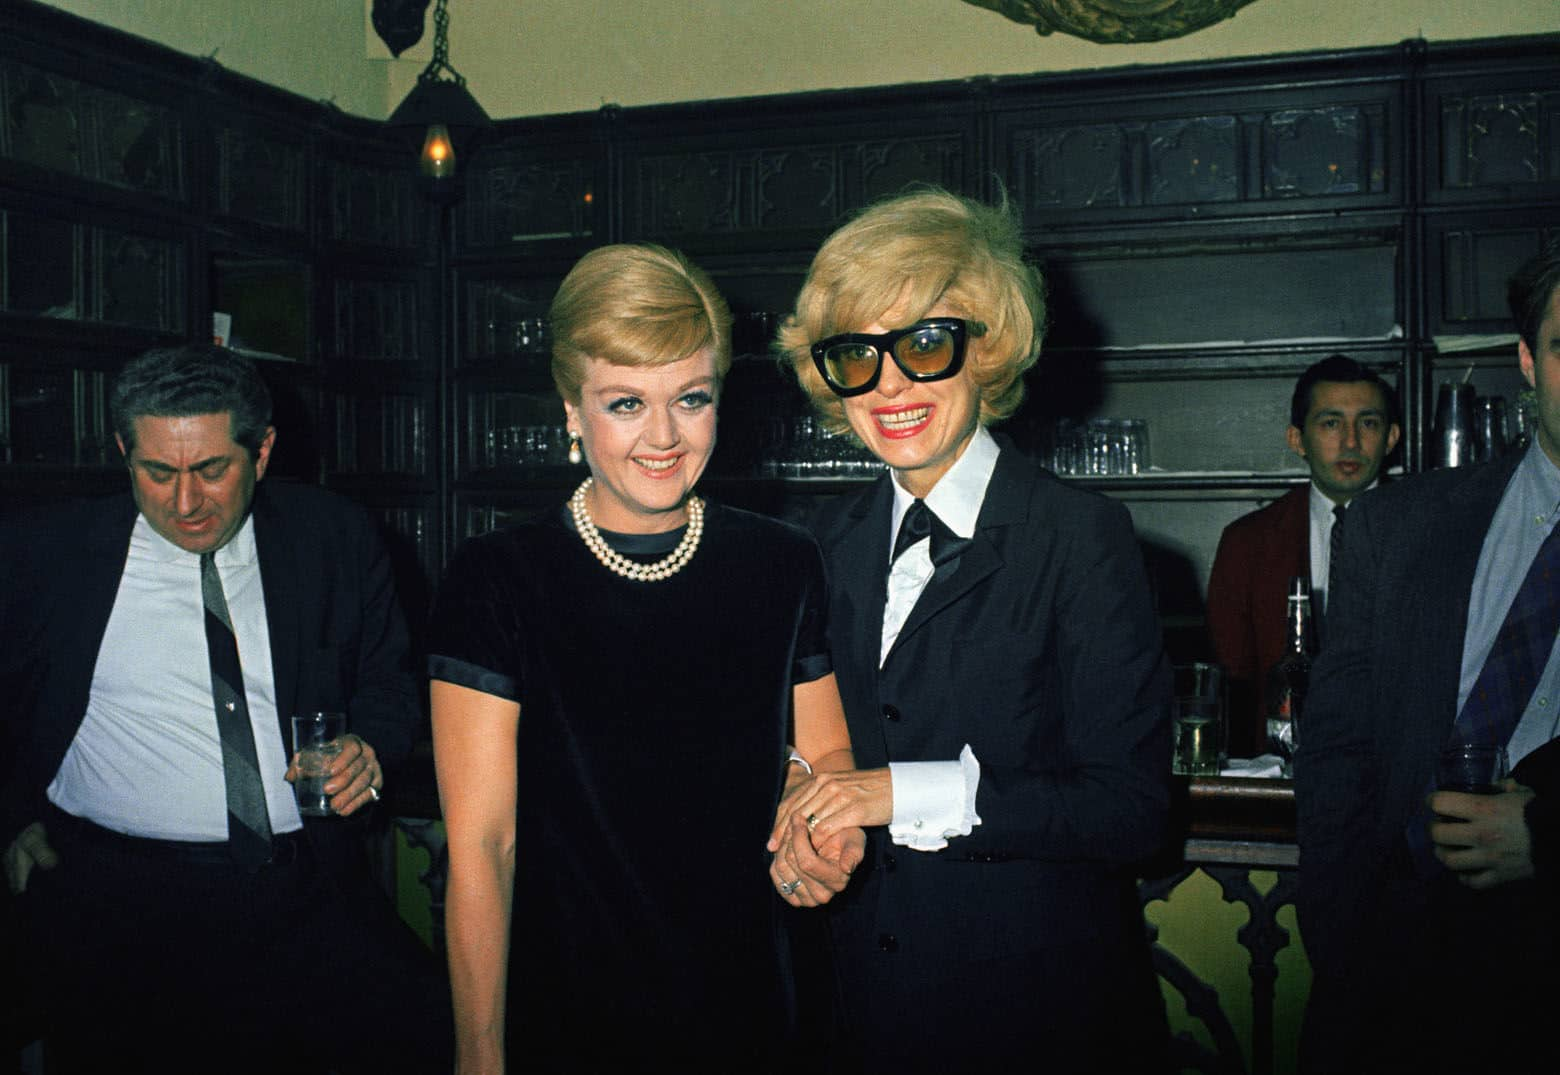 Anglea Lansbury (left) with Carol Channing at a party at Sardis in New York, March 16, 1967. (AP Photo/John Duricka)